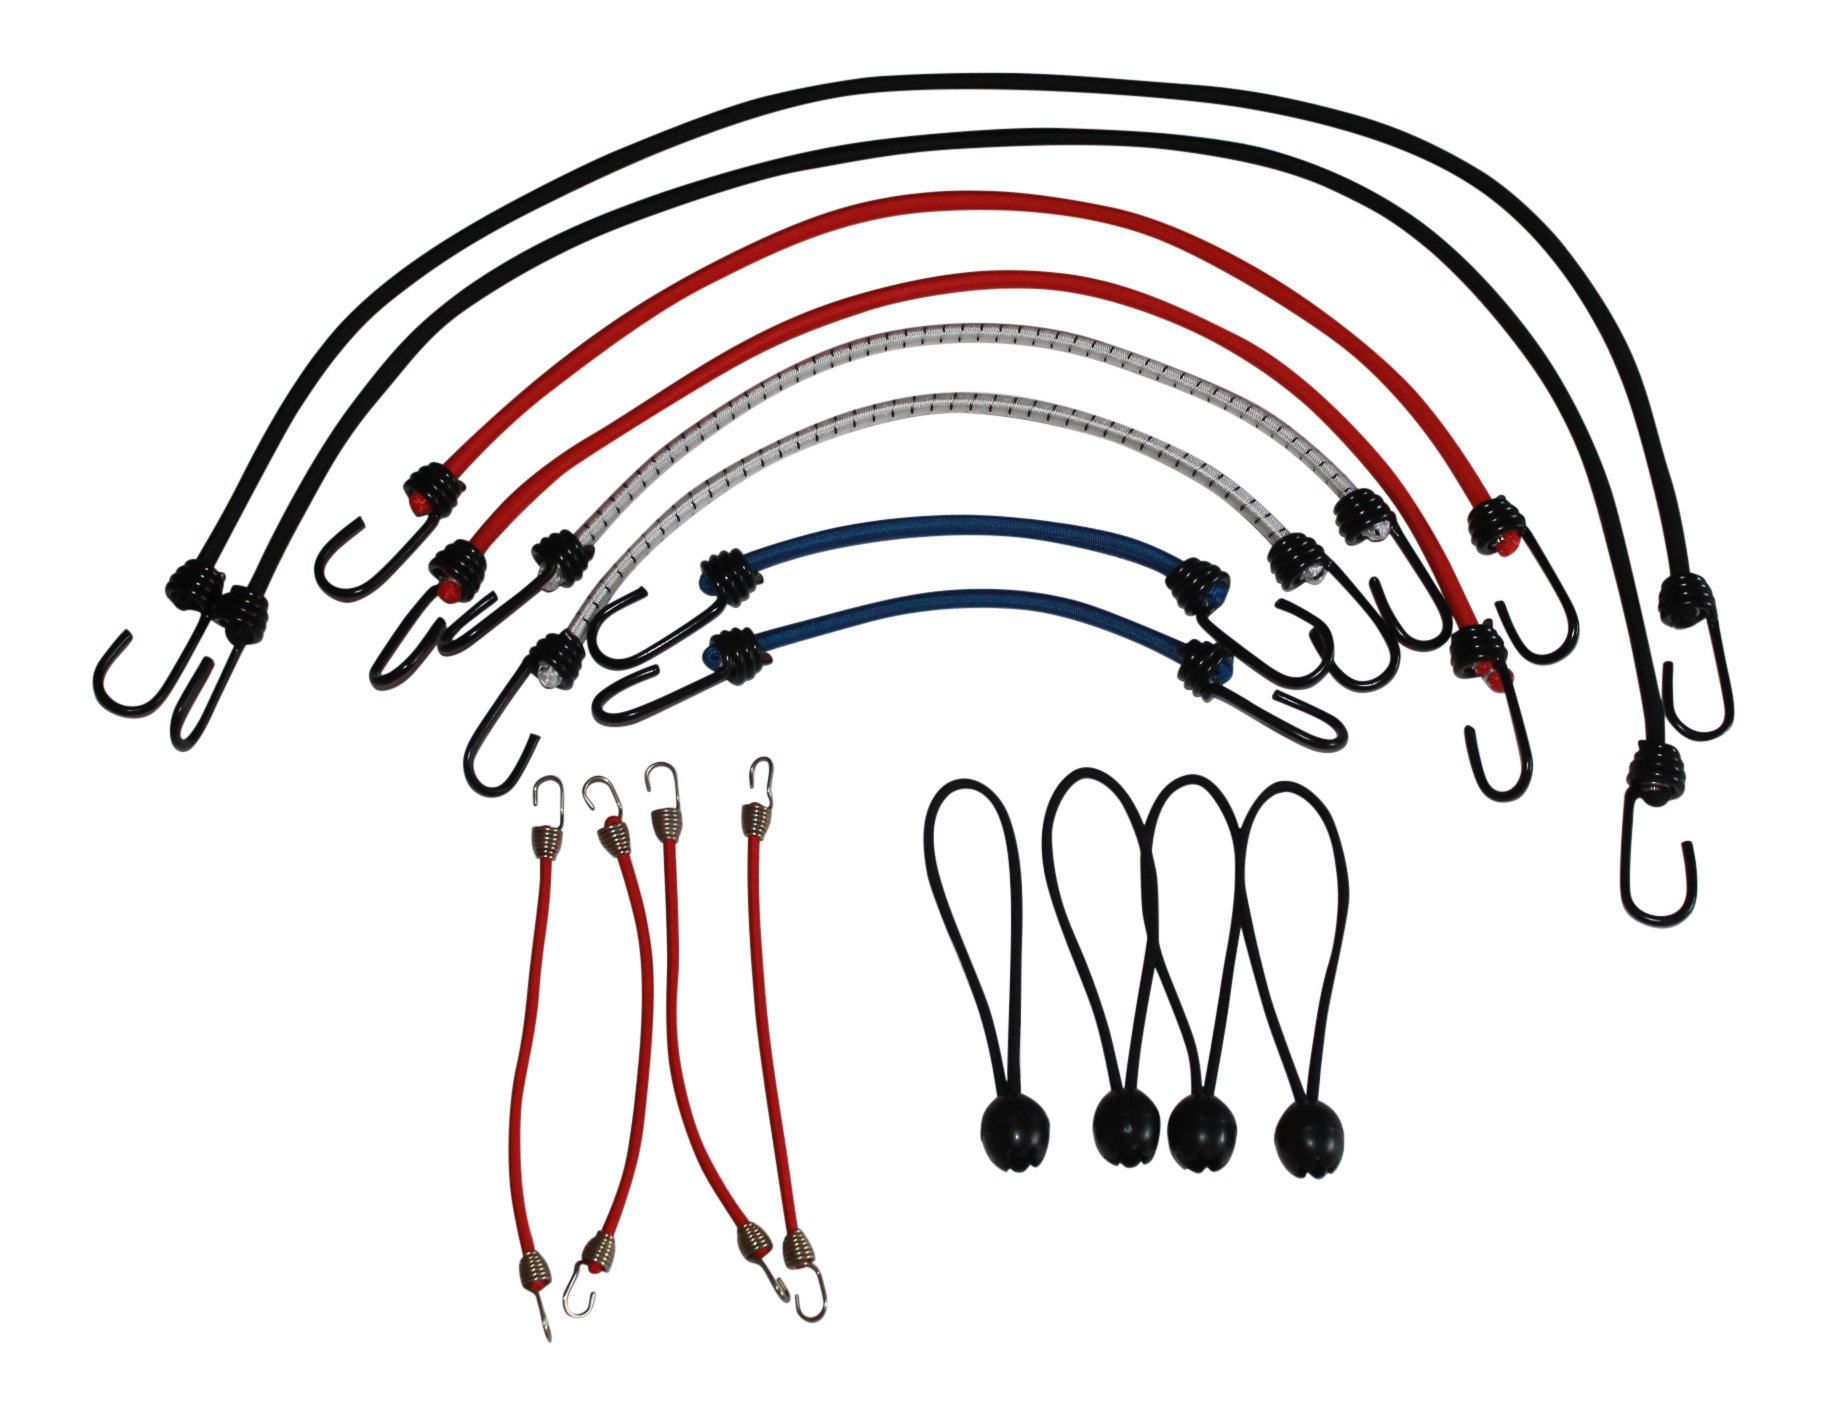 Bungee Cords Multi Pack Made in USA - 16 Cord Pack Bungee Cords Various colors and lengths